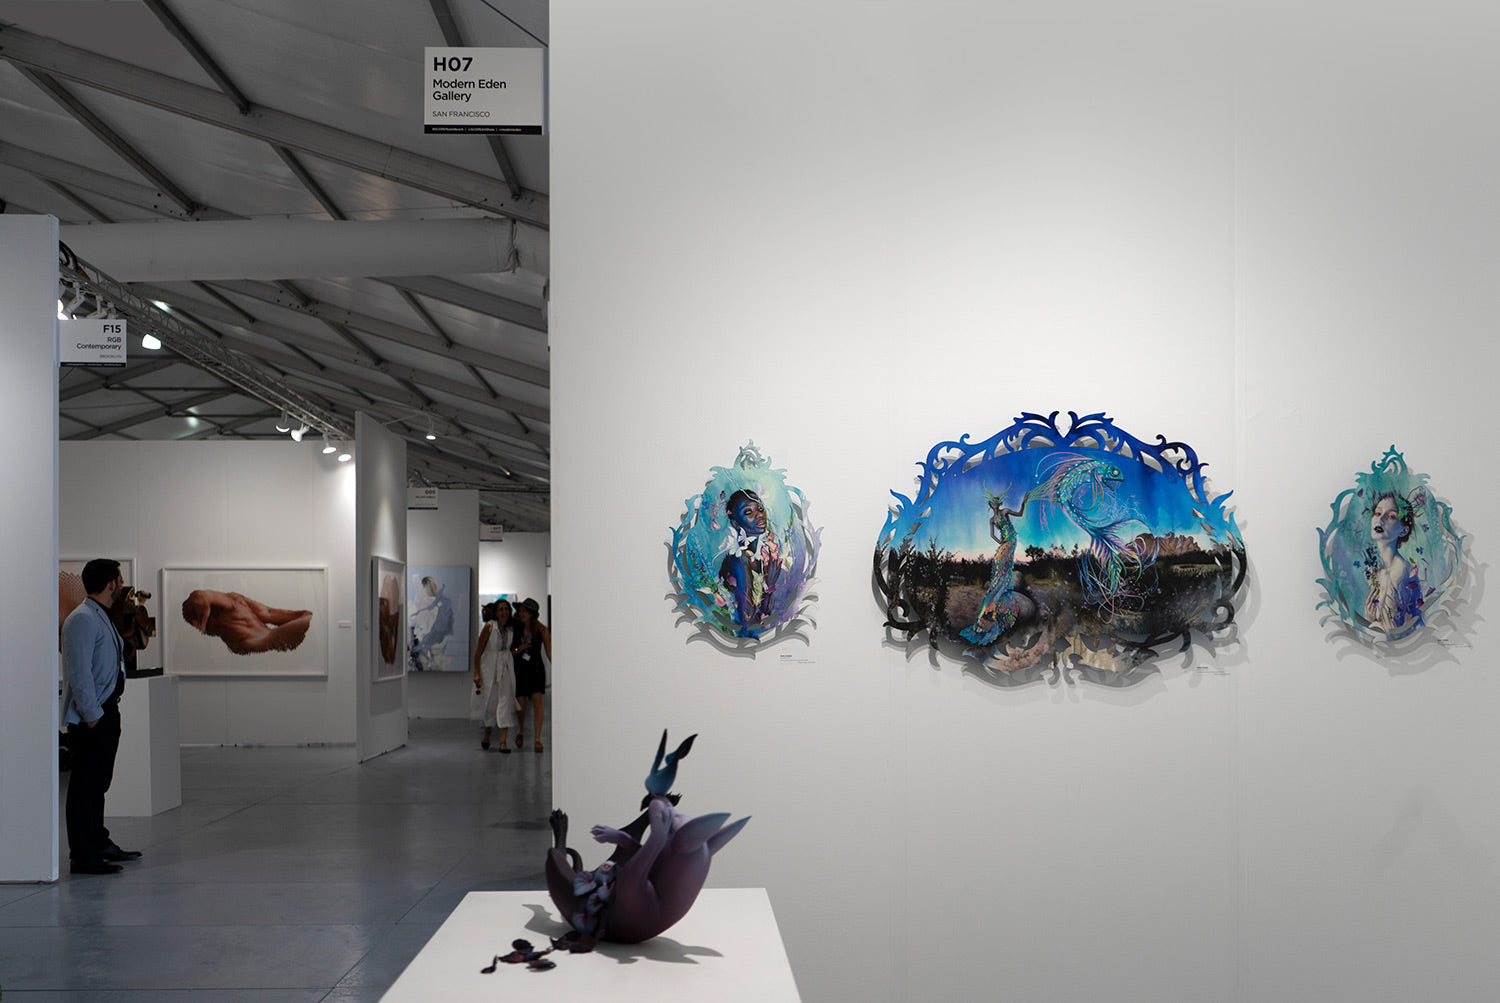 Works by Erika Sanada and Redd Walitzki at Modern Eden Booth H07 SCOPE Miami Beach 2018